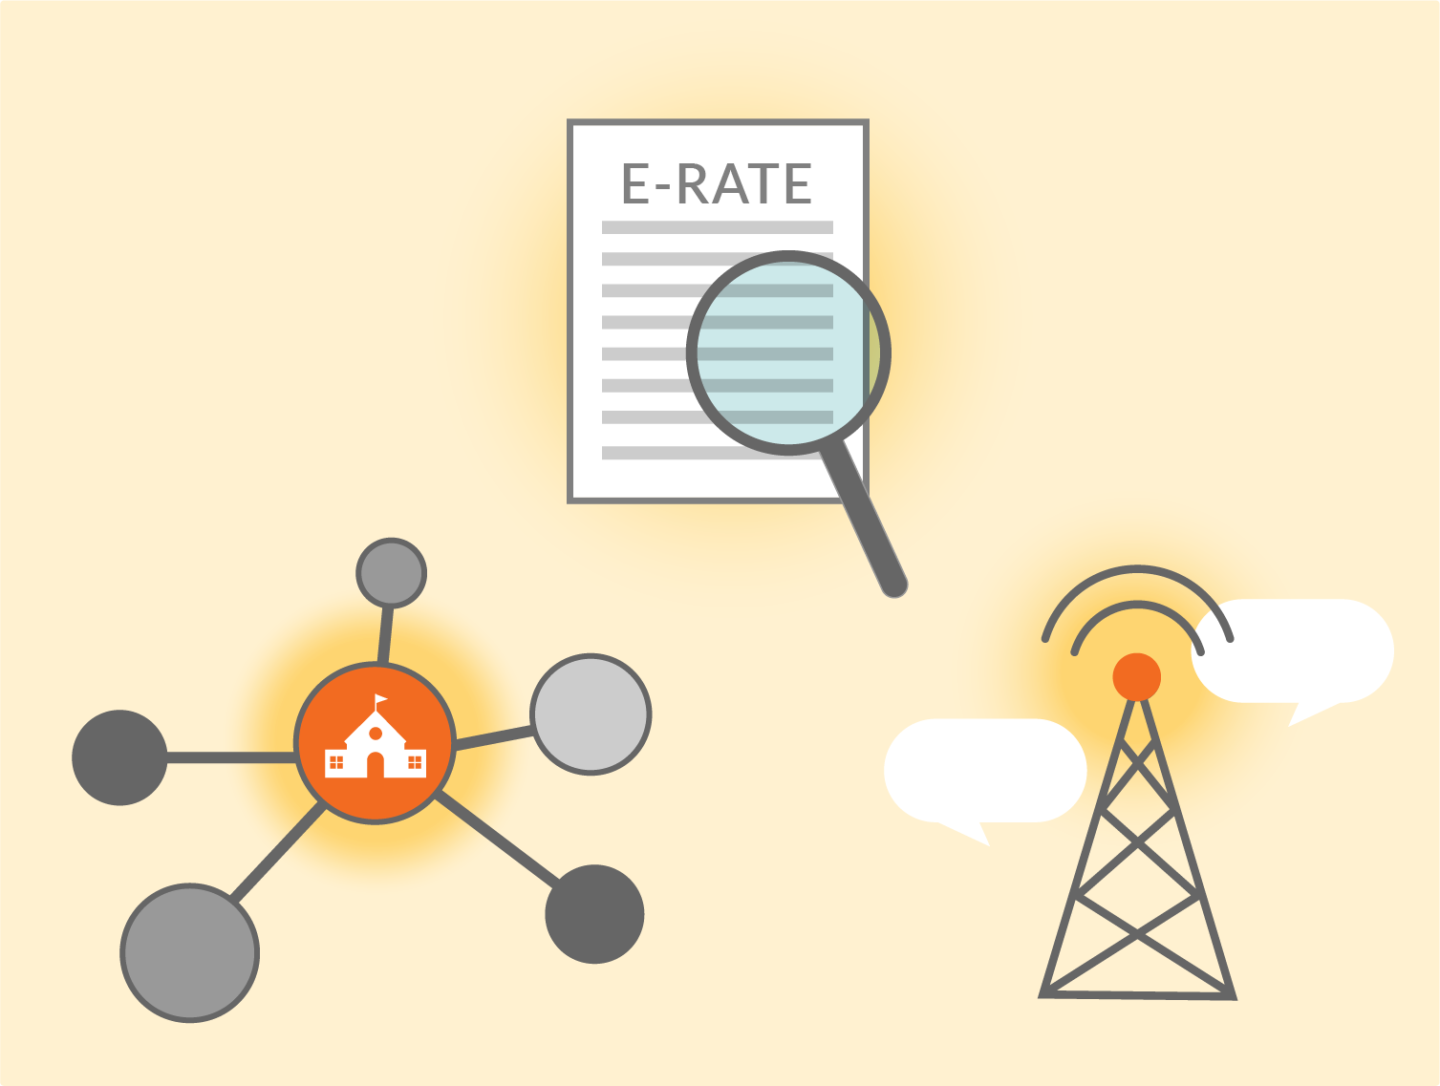 Graphic depicting E-rate navigation, school network, and service provider engagement